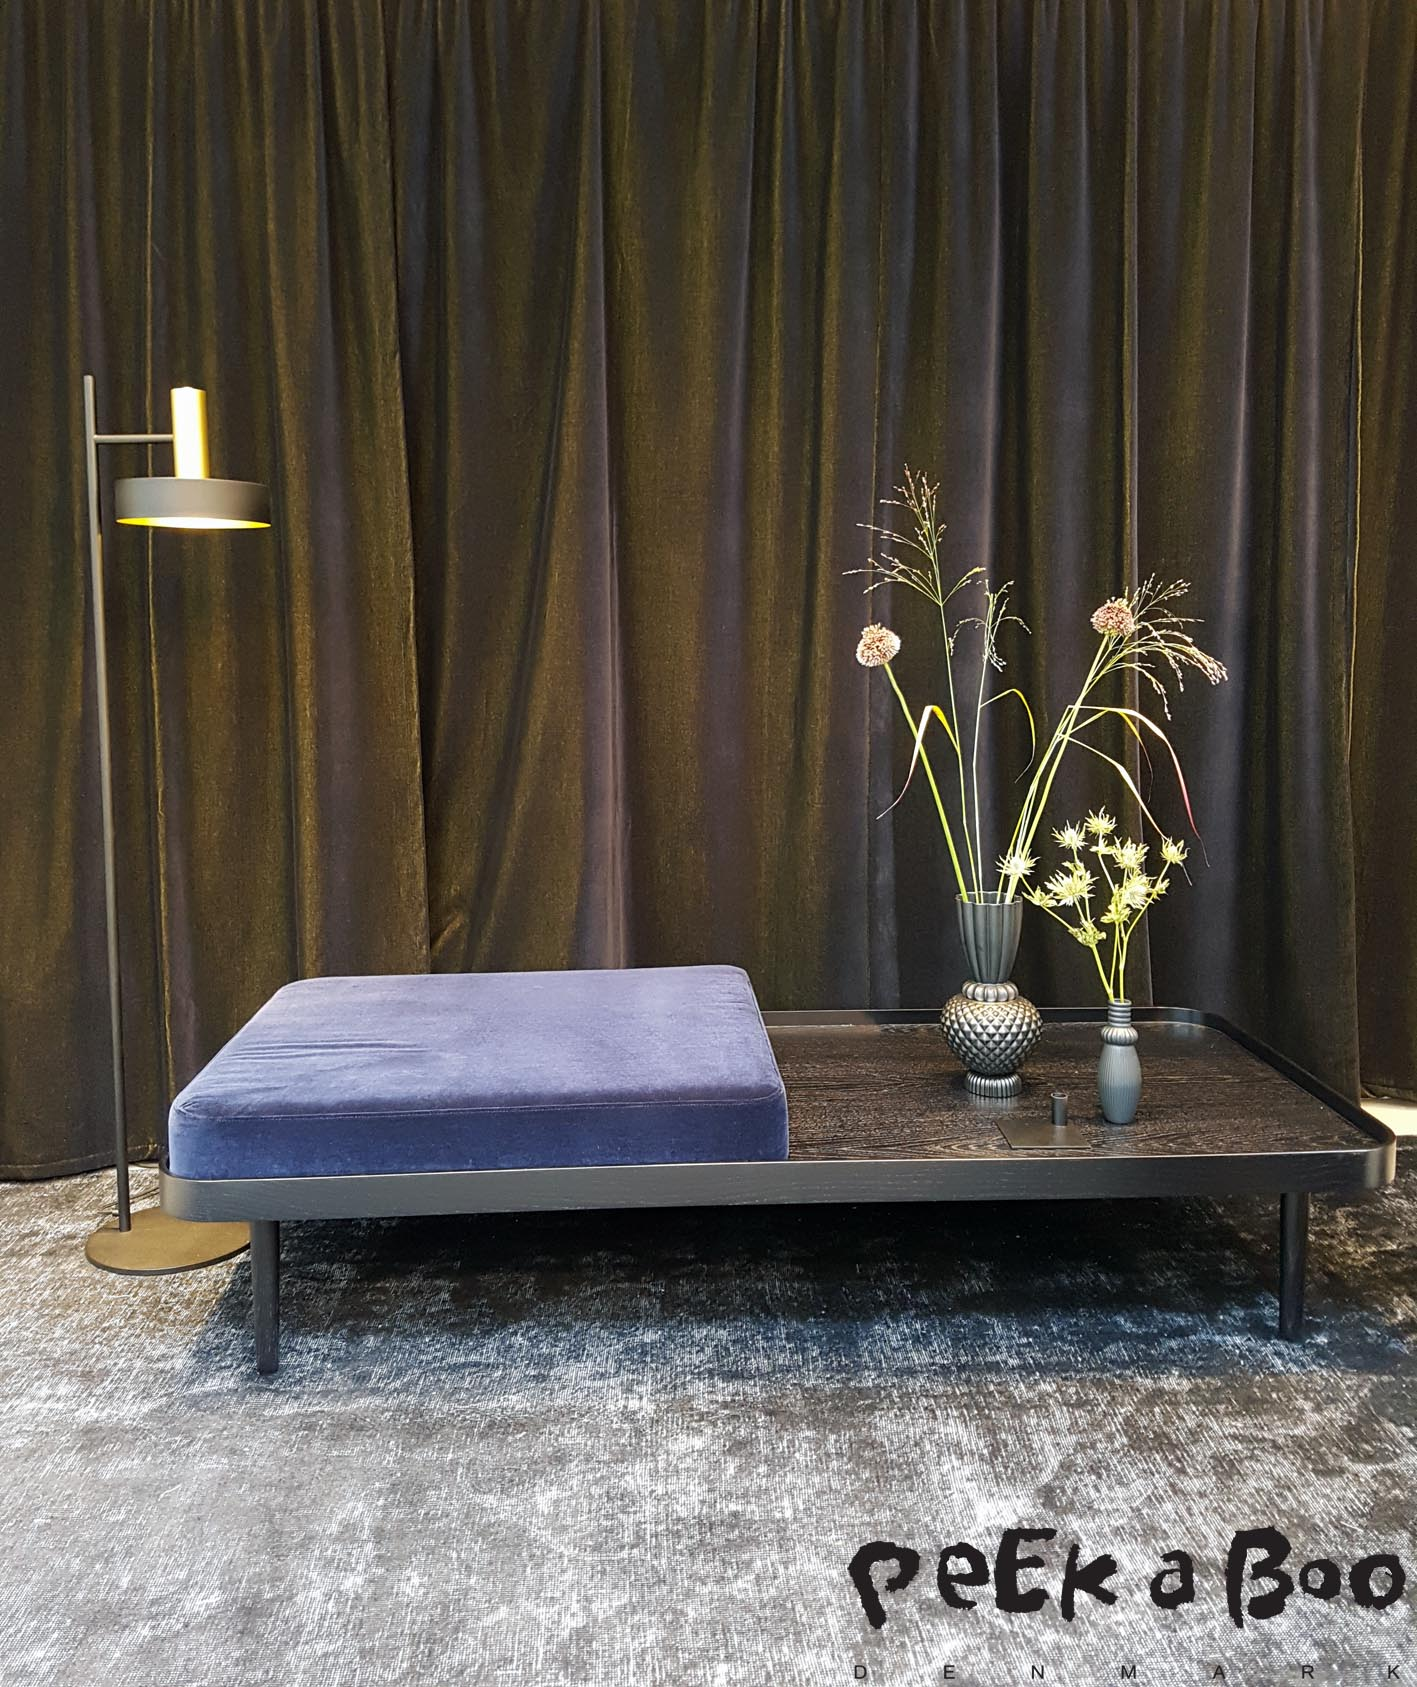 Daybed from by Klip Klap and designed by Charlotte Høncke. The floorlamp is from Rewired and called SL01.